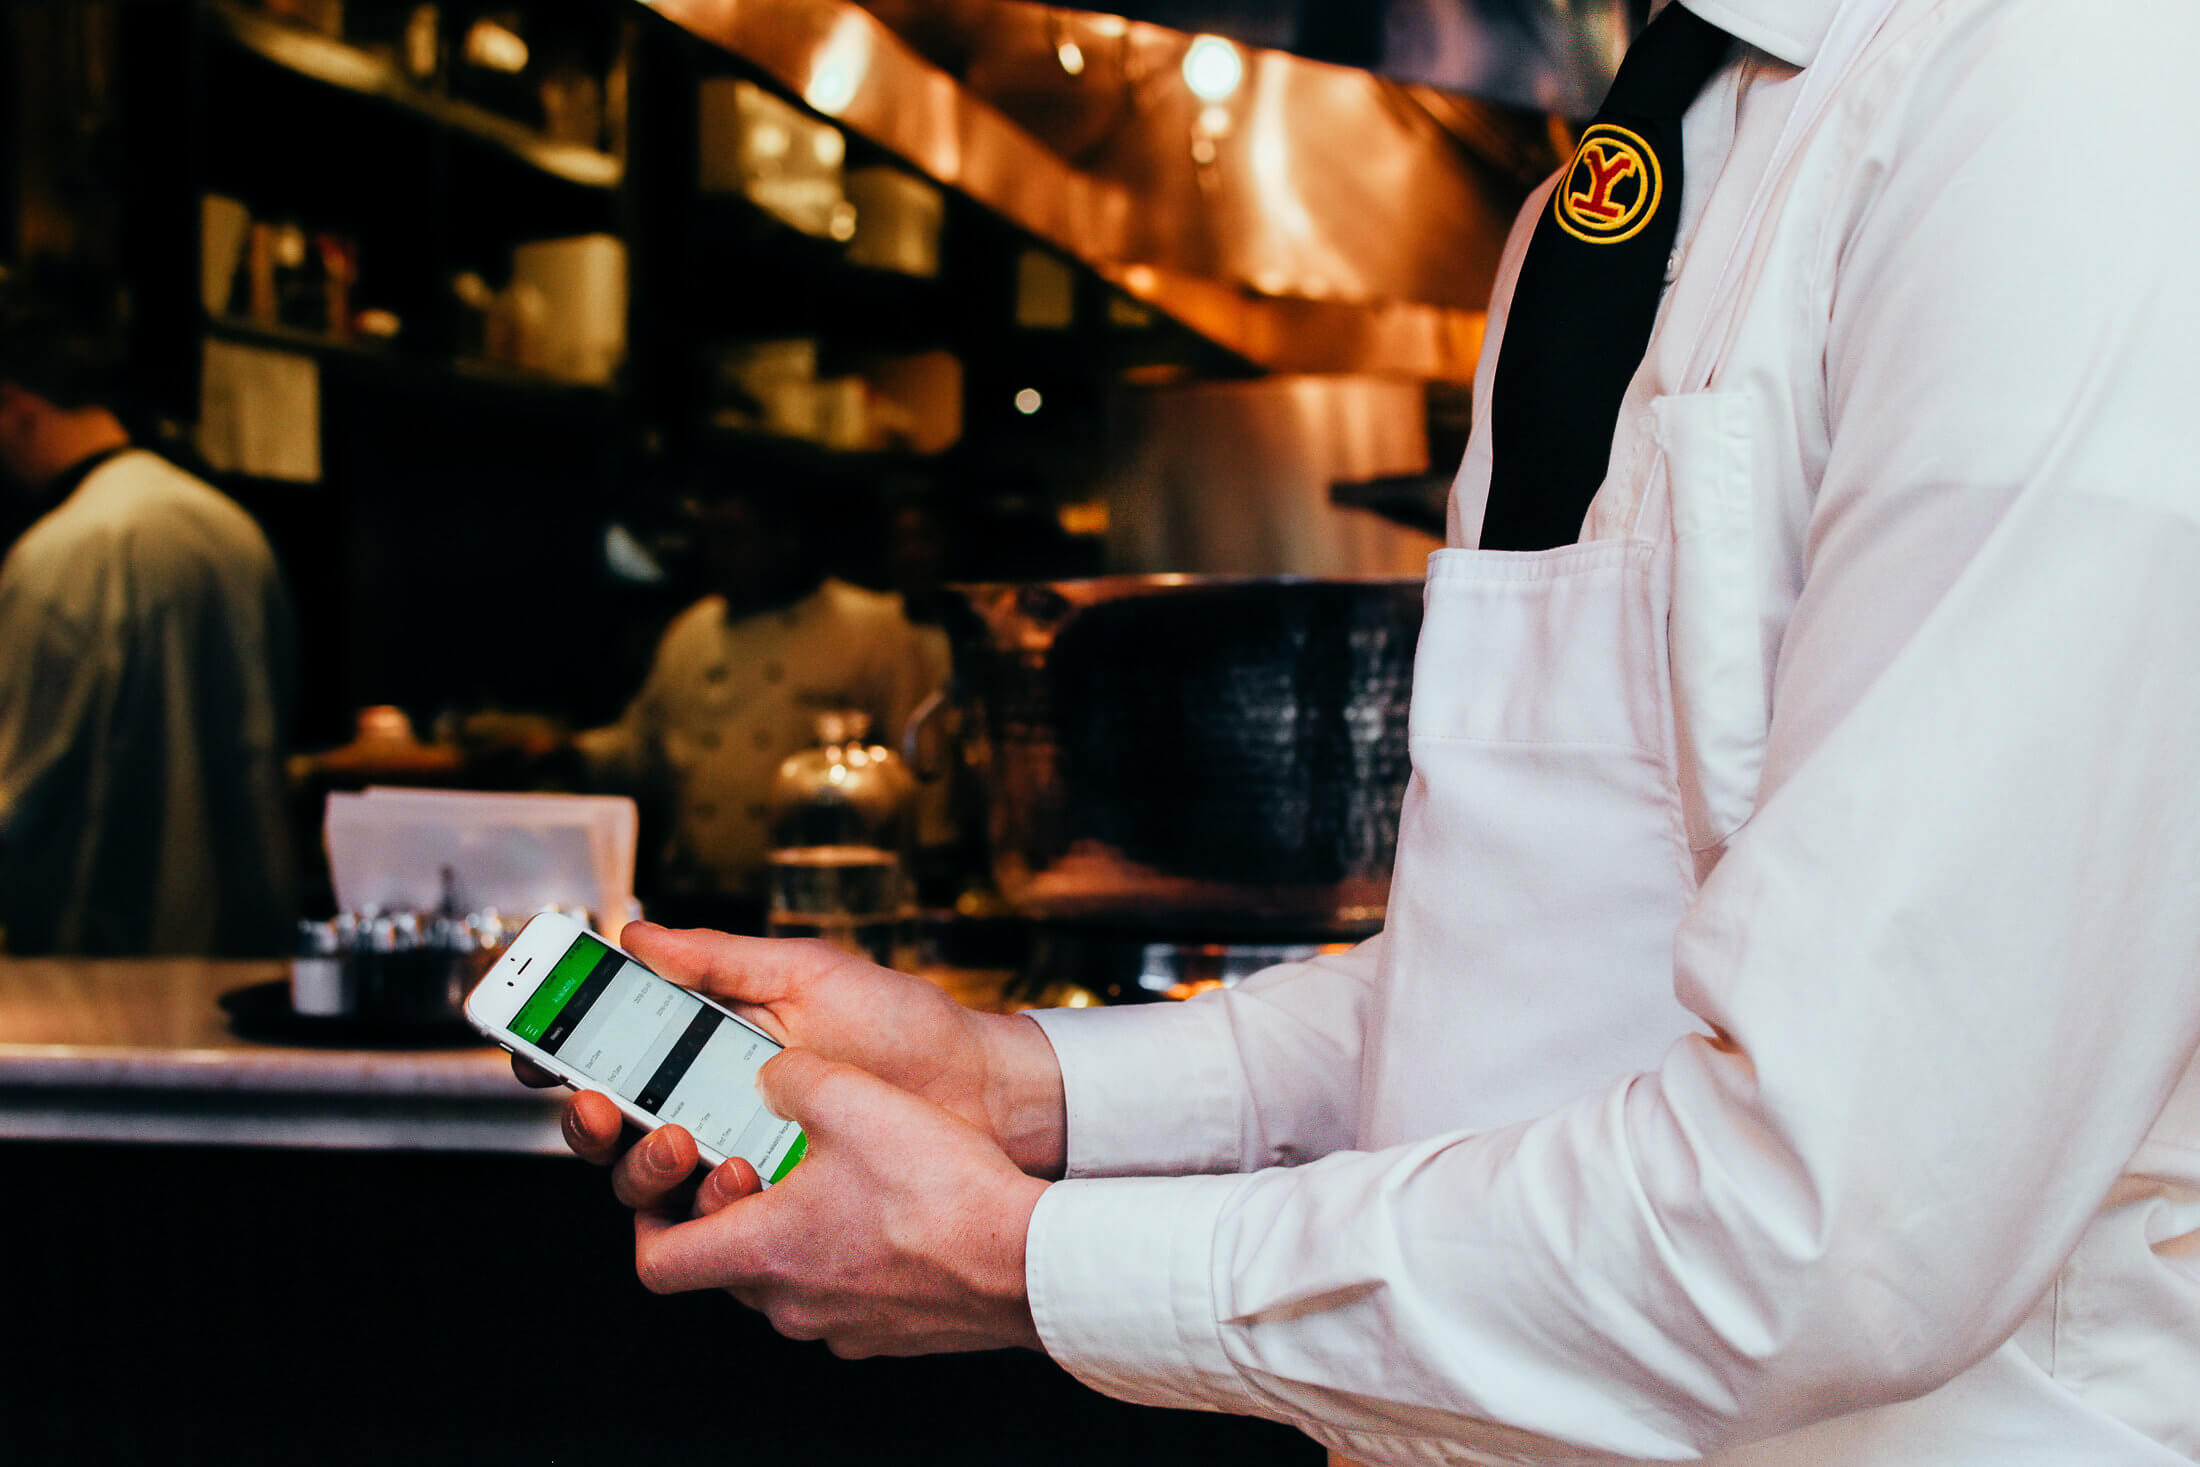 Technology Disrupting the Restaurant Industry